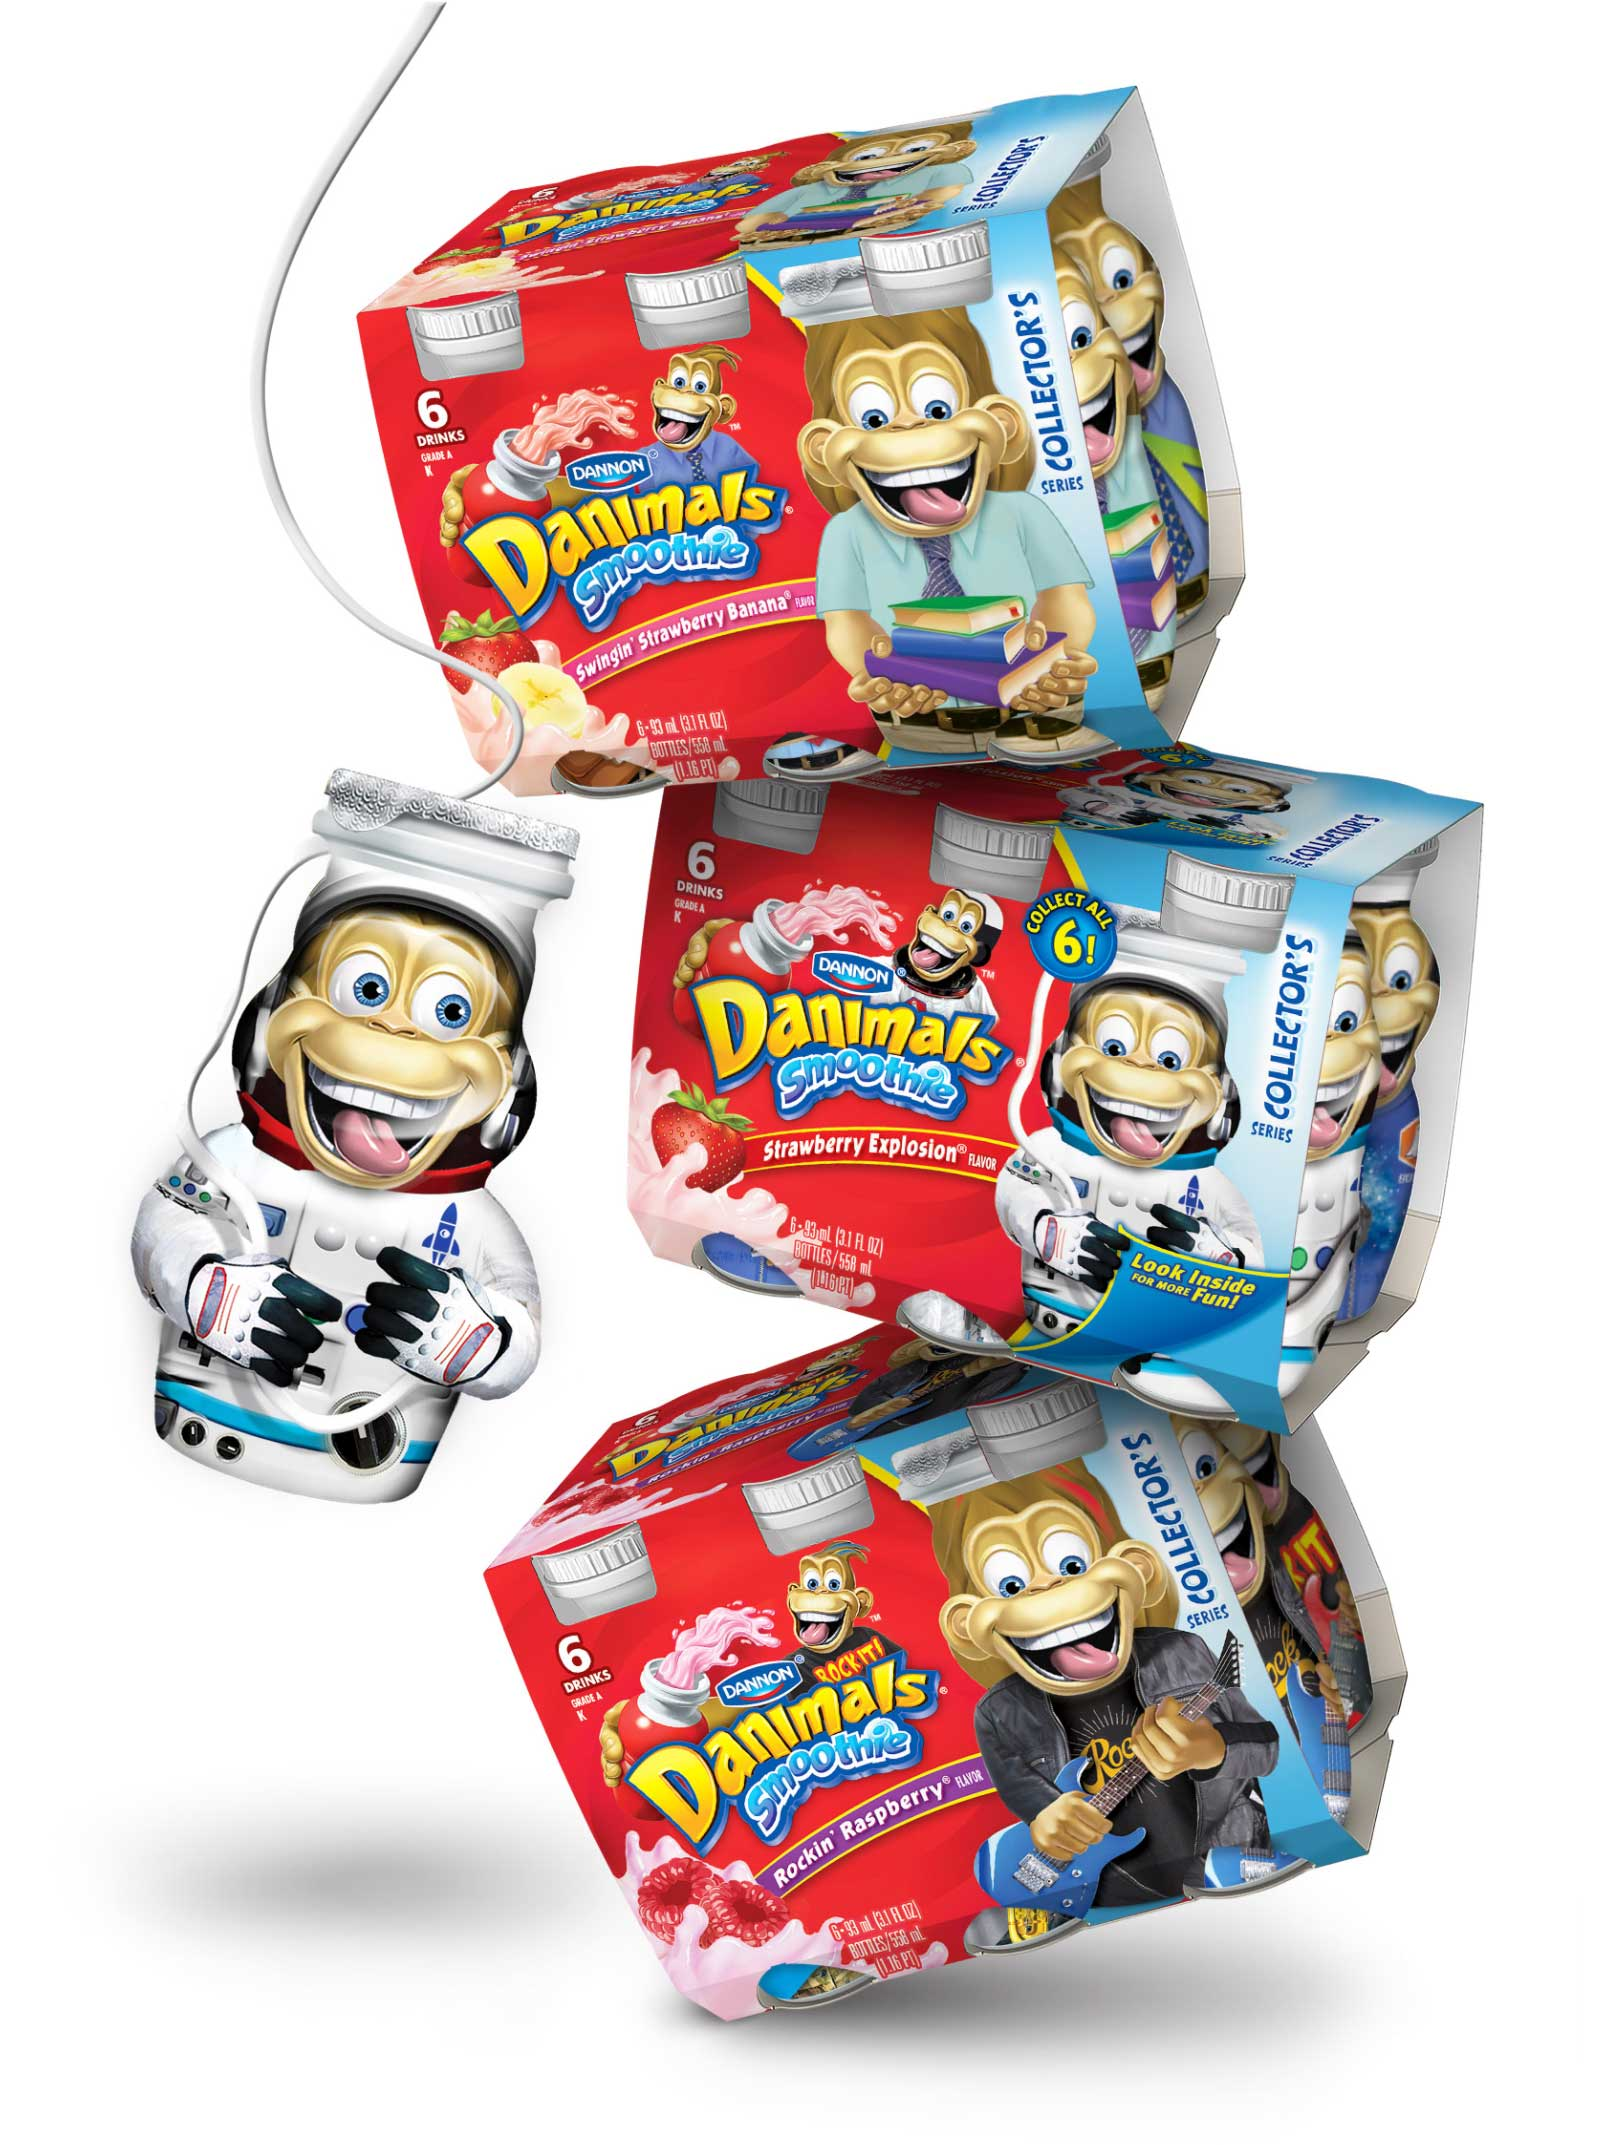 Dannon-Yogurt-Danimals-Smoothies-with-Monkey-Characters